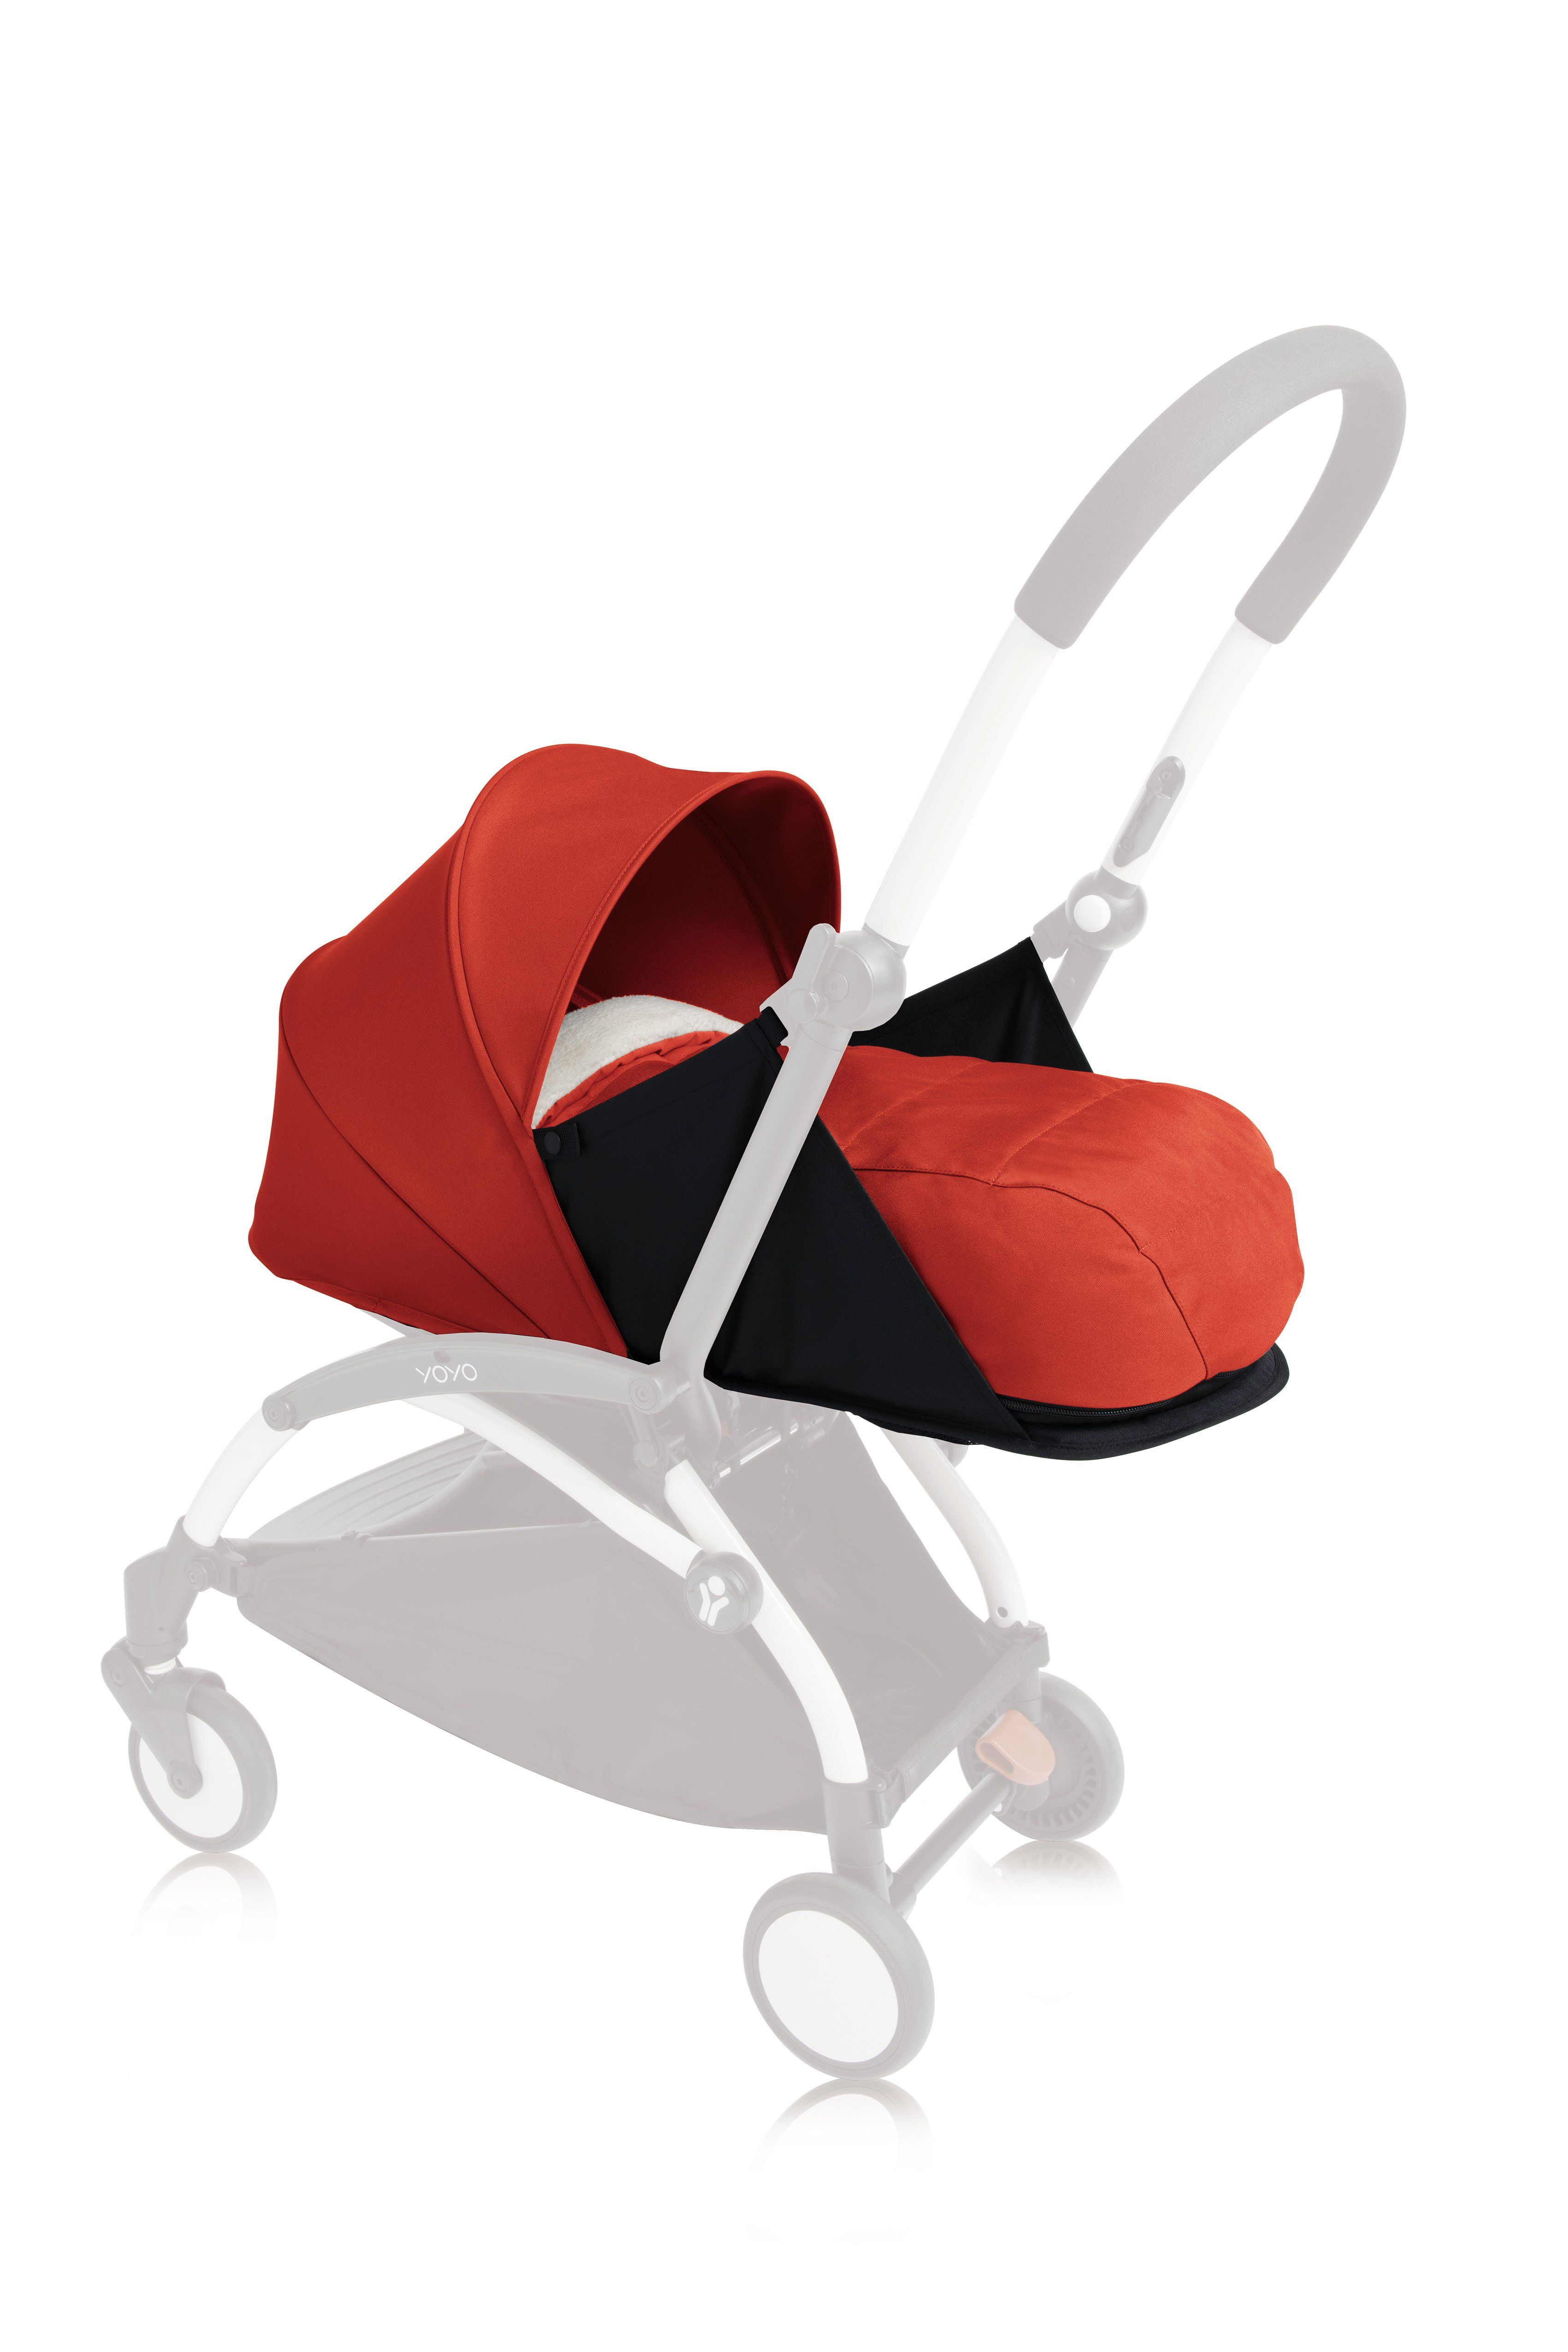 YOYO+ Newborn Pack 0+ Red 2019 New baby products, Baby